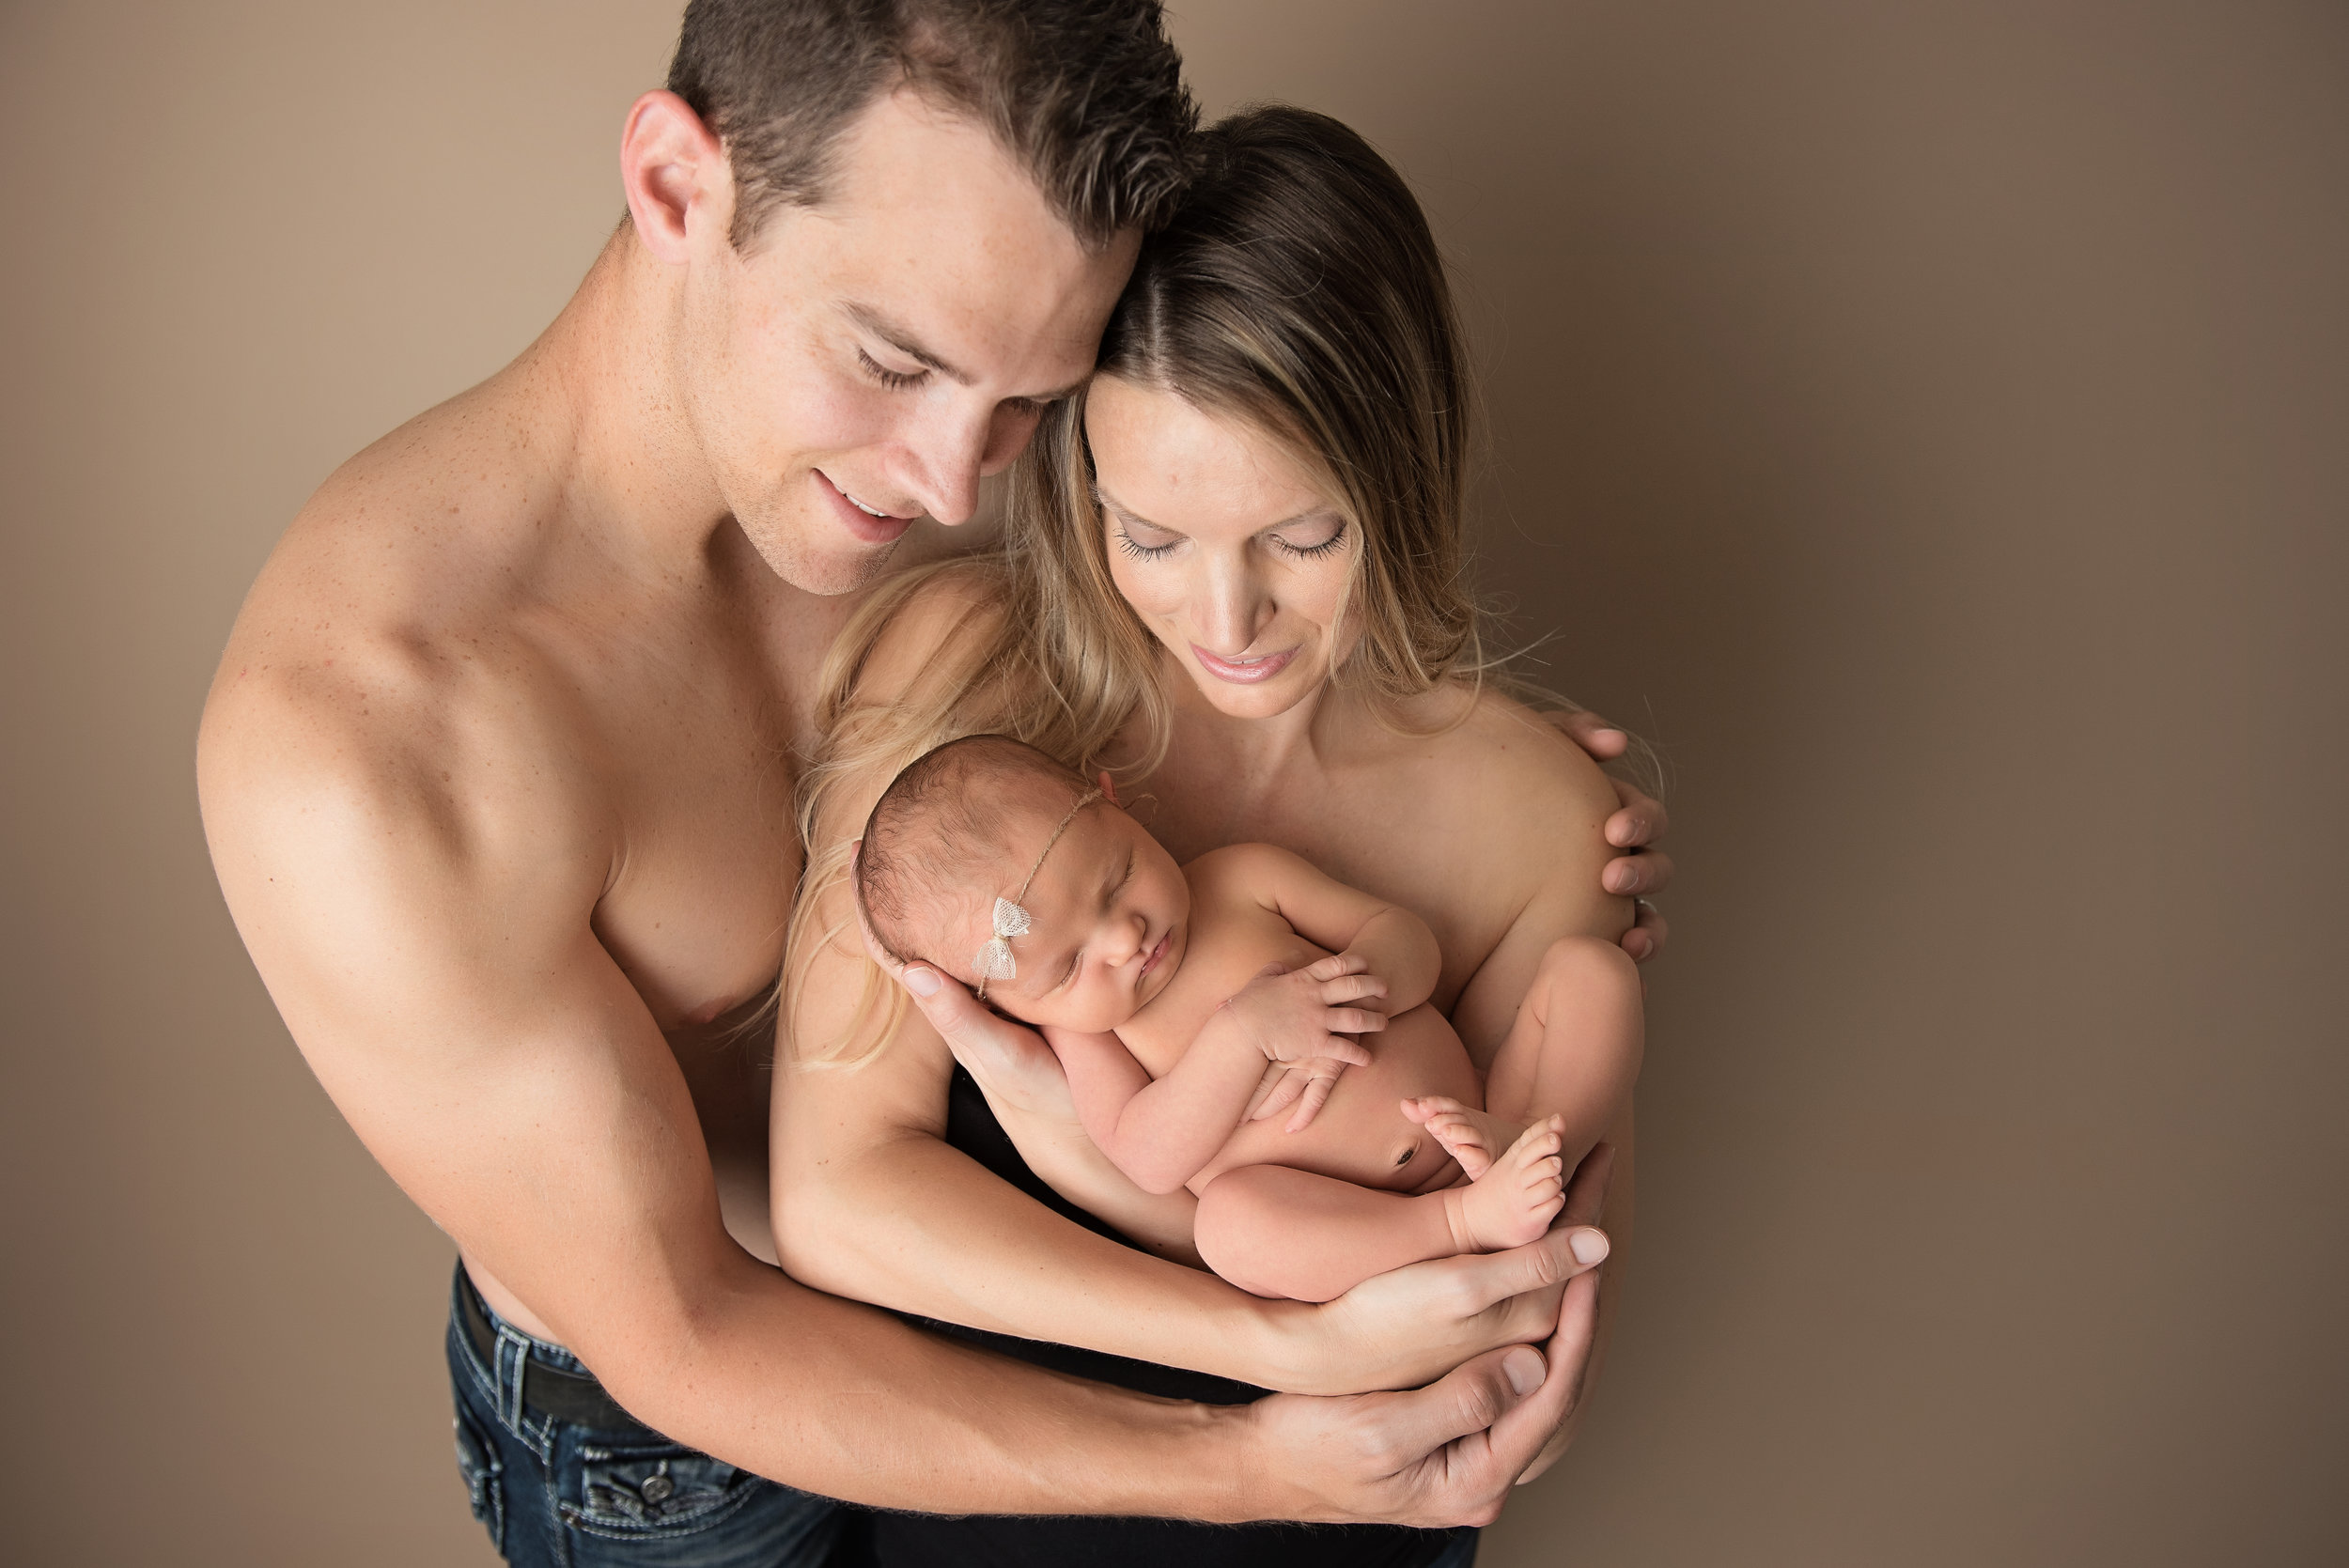 Lonsdale_Newborn_Photographer4.jpg